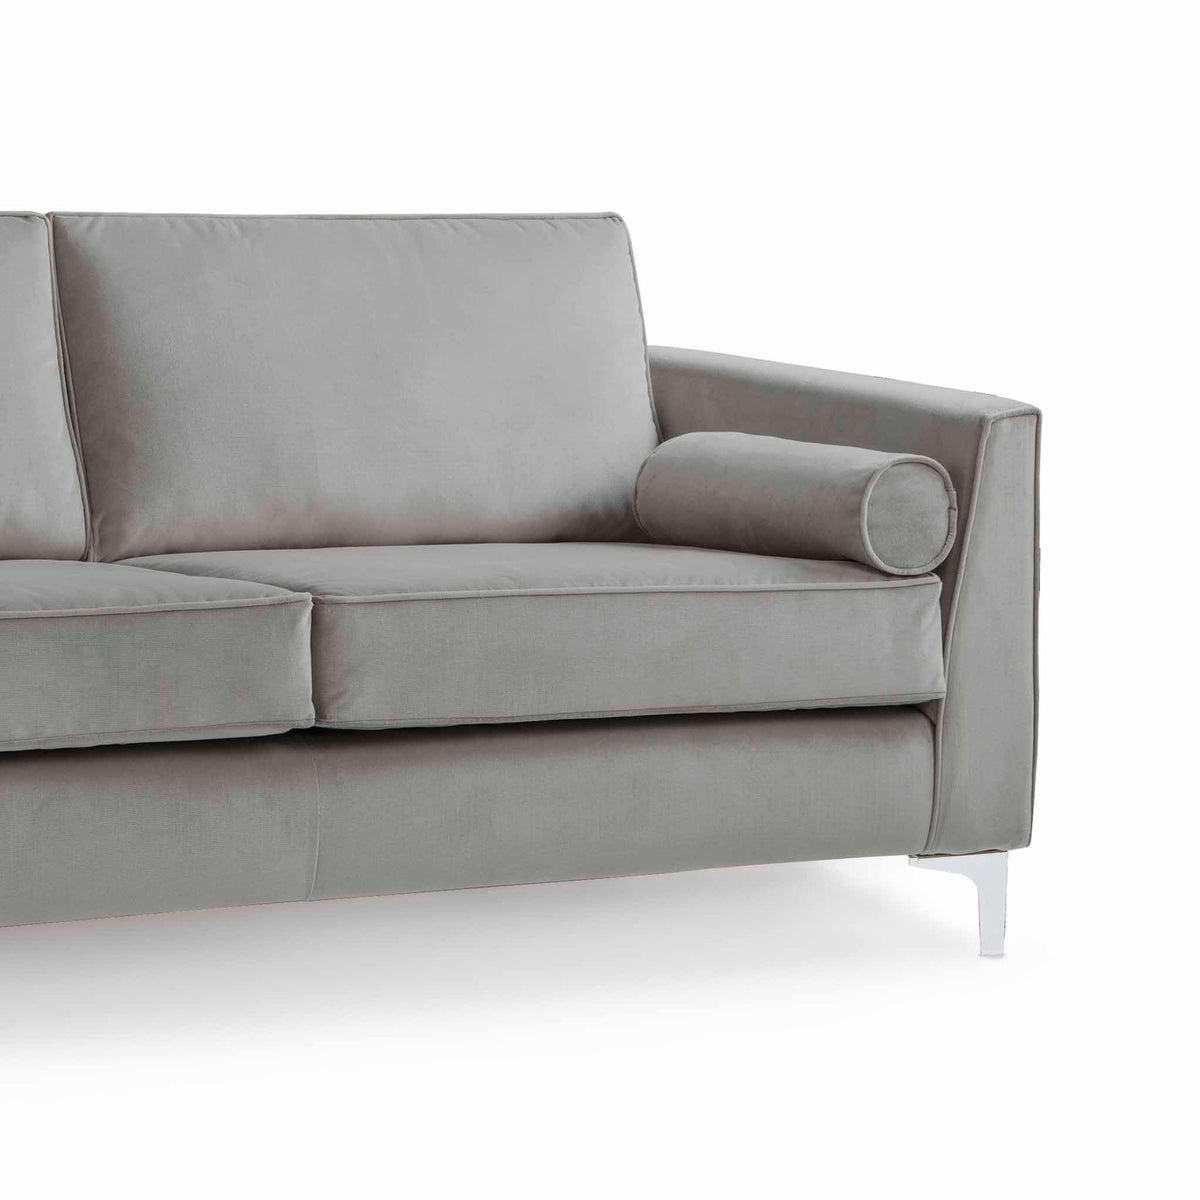 Ikon Grey 3 Seater Sofa - Close up